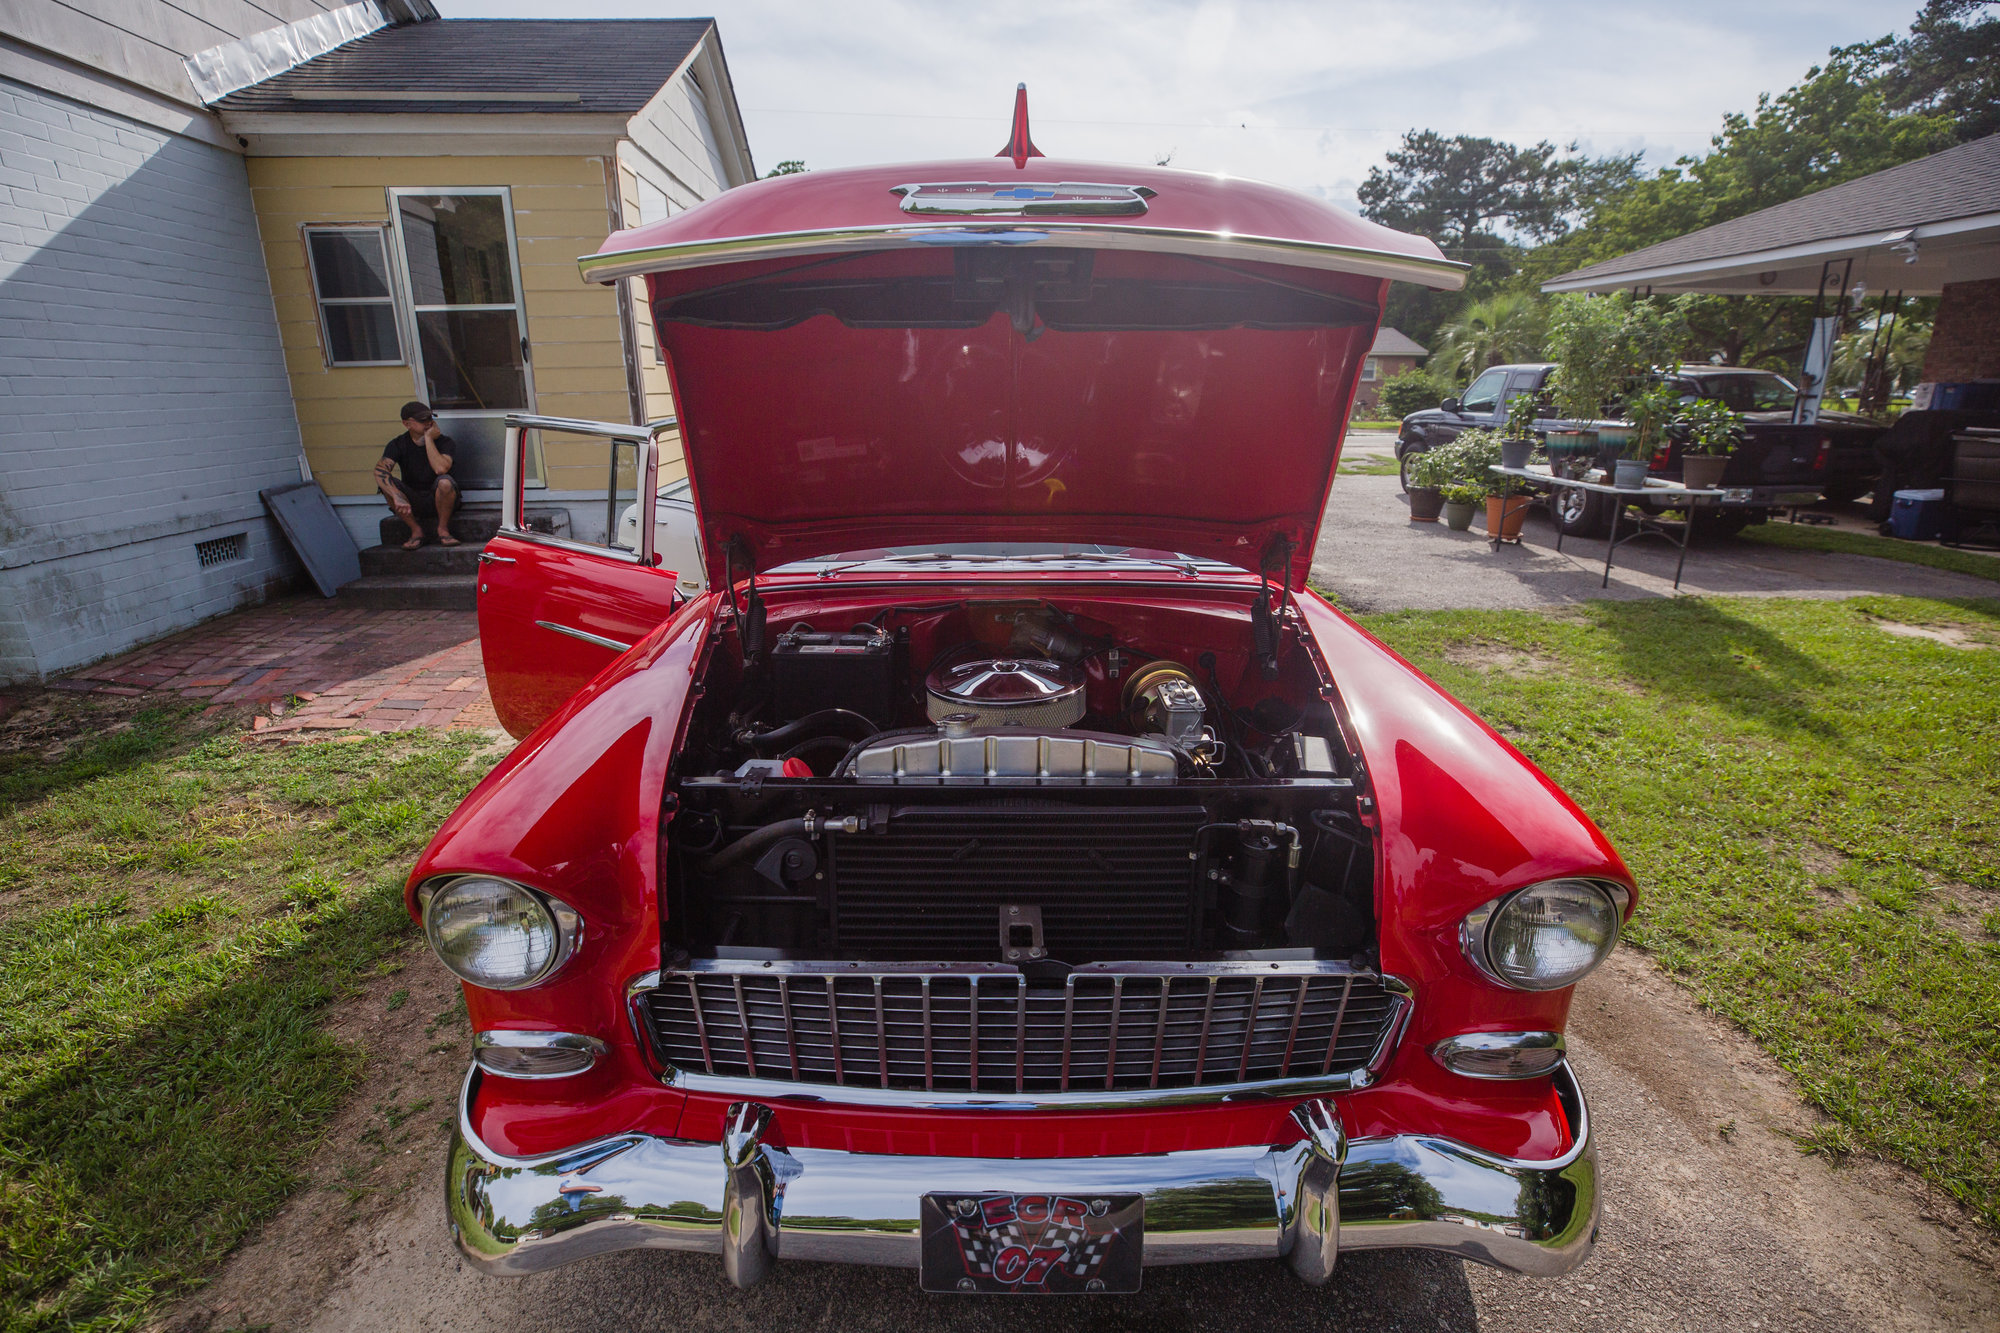 Harold Hodge's '55 Chevy Bel Air sits in the driveway of his son Glenn's house.